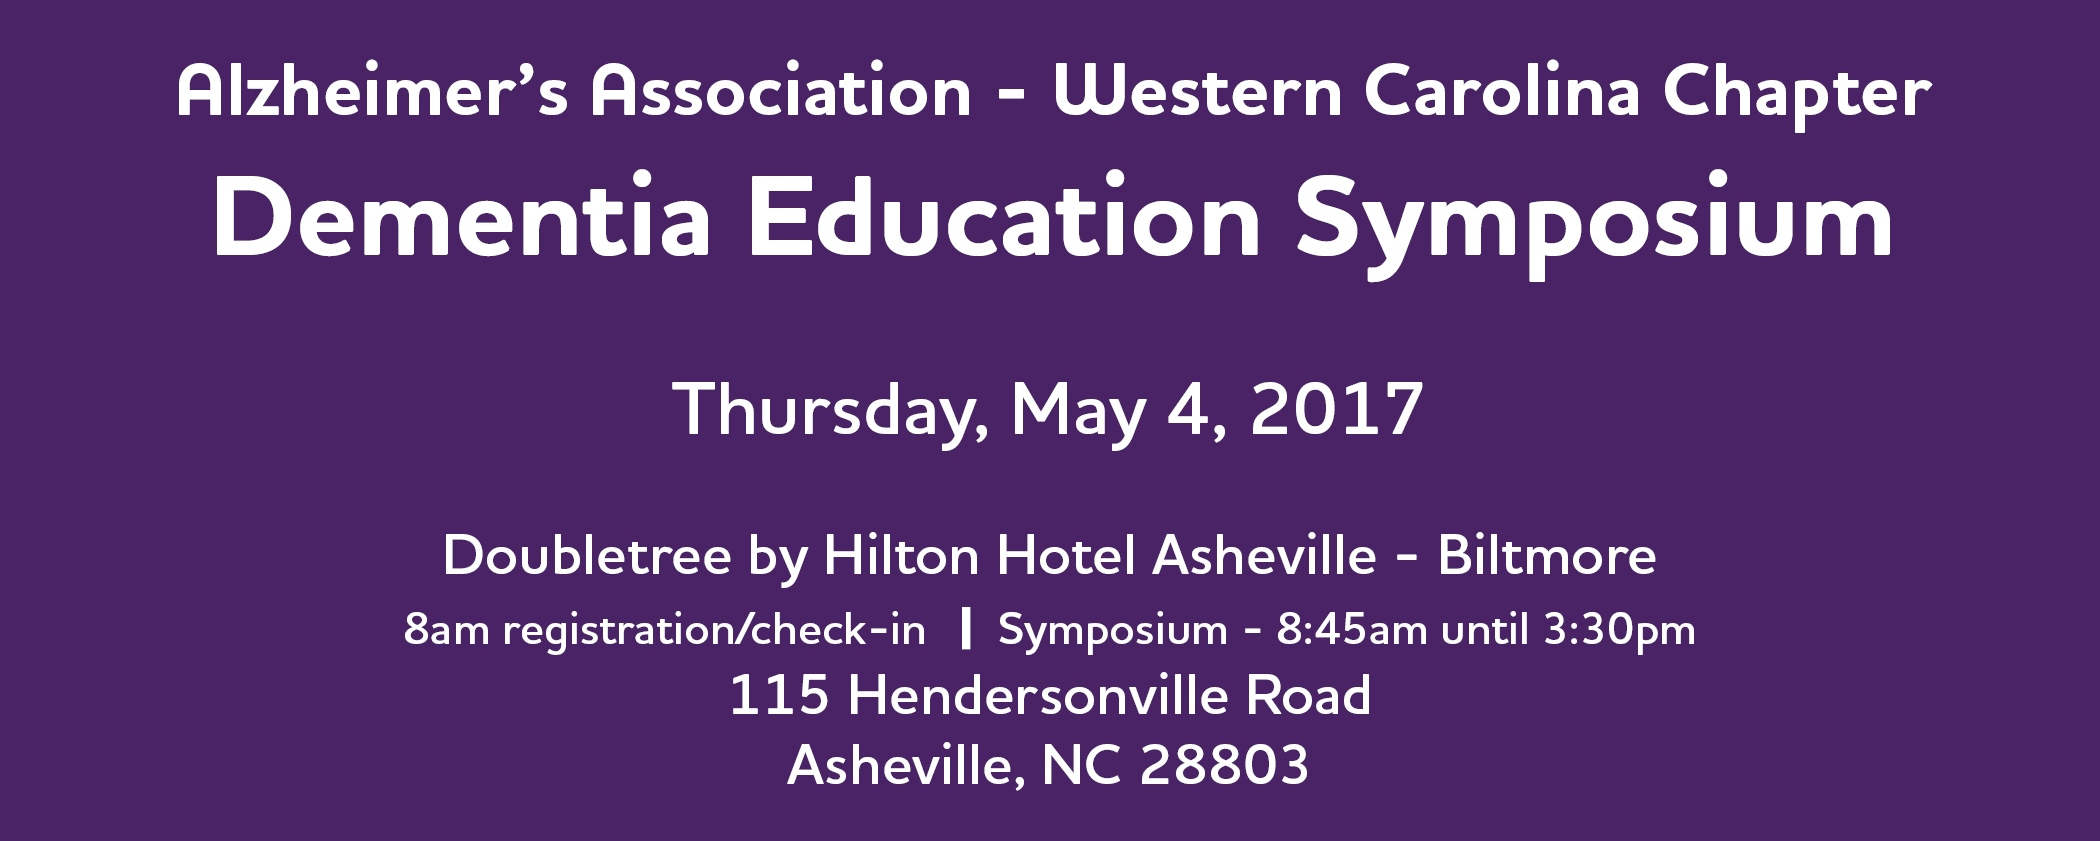 Dementia Education Symposium Banner 2. Asheville 2017